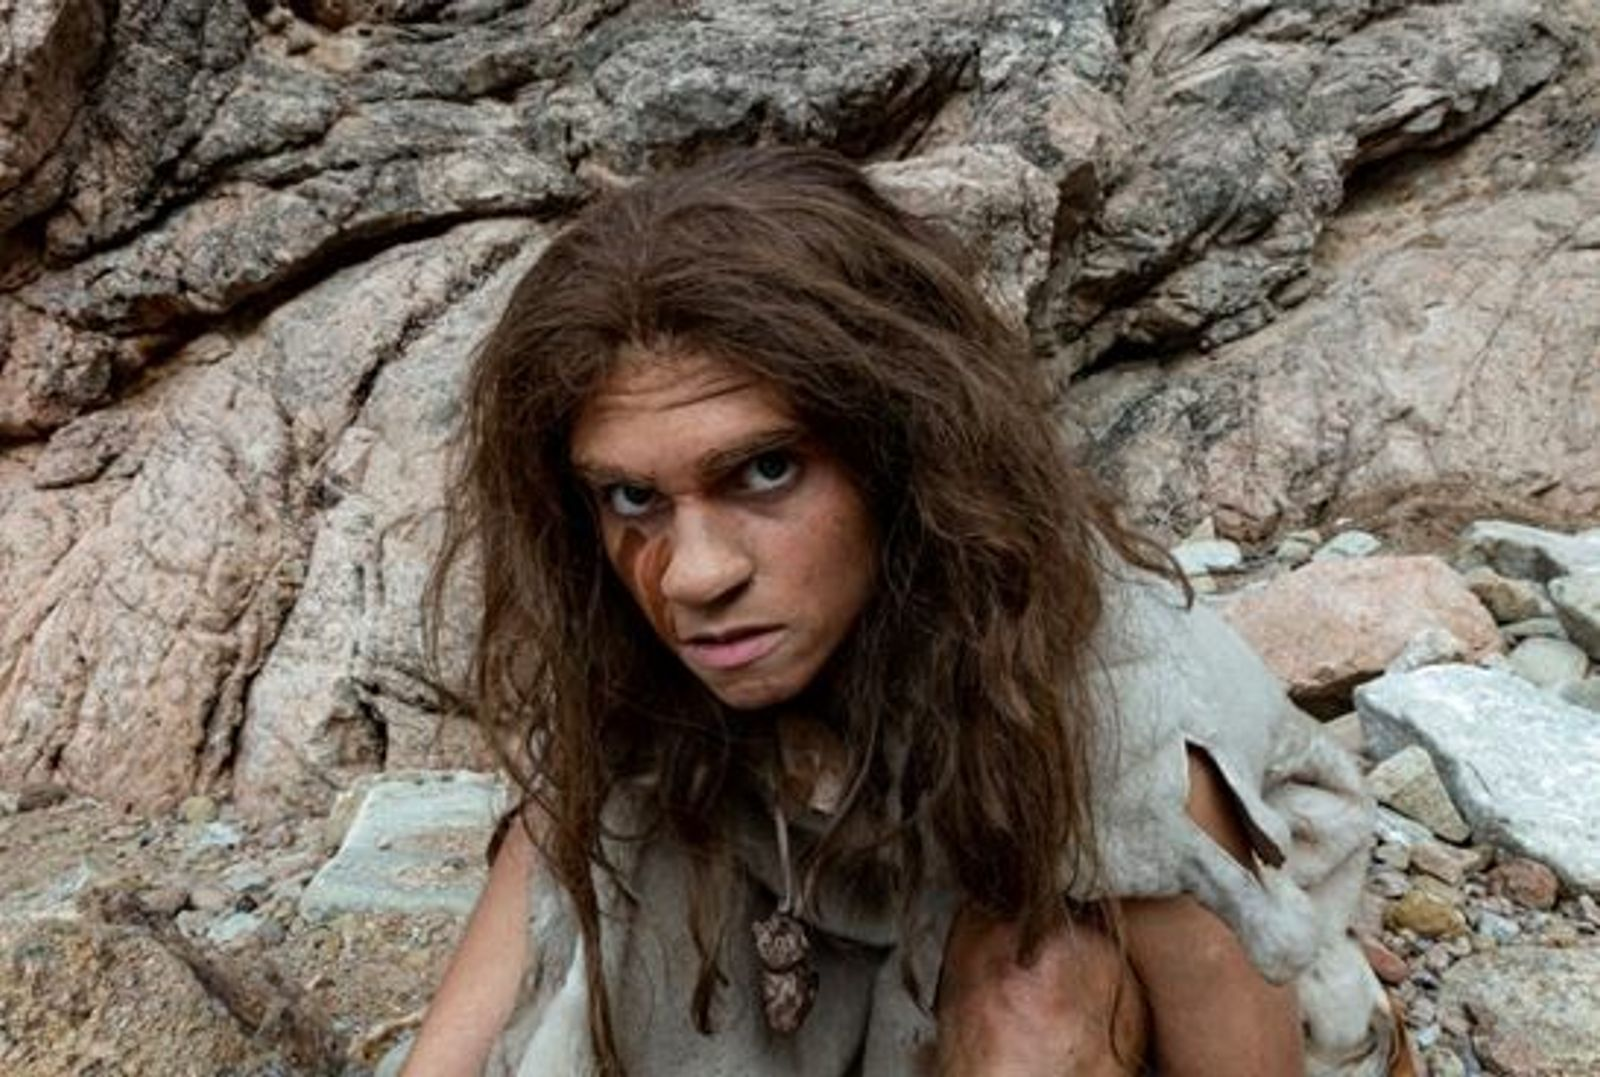 El documental Neandertales: El último refugio se estrena en National Geographic el domingo 14 de marzo